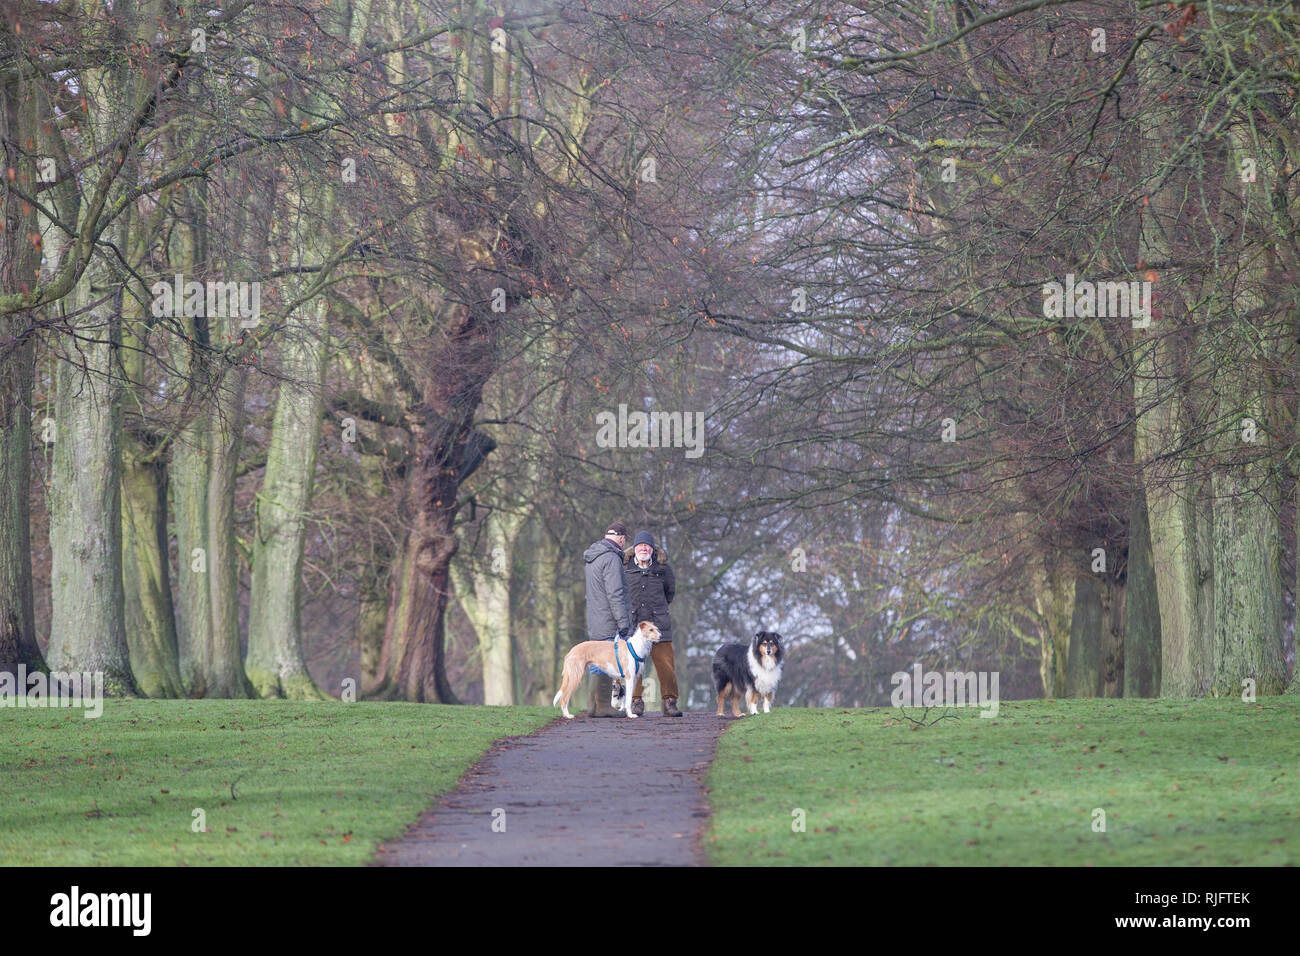 Northampton. U.K. 6th February 2019. Abington Park. Two men out walking their dogs after the mist had cleared, standing having a chat  in the avenue of trees while the dogs stand waiting patiently. Credit: Keith J Smith./Alamy Live News - Stock Image